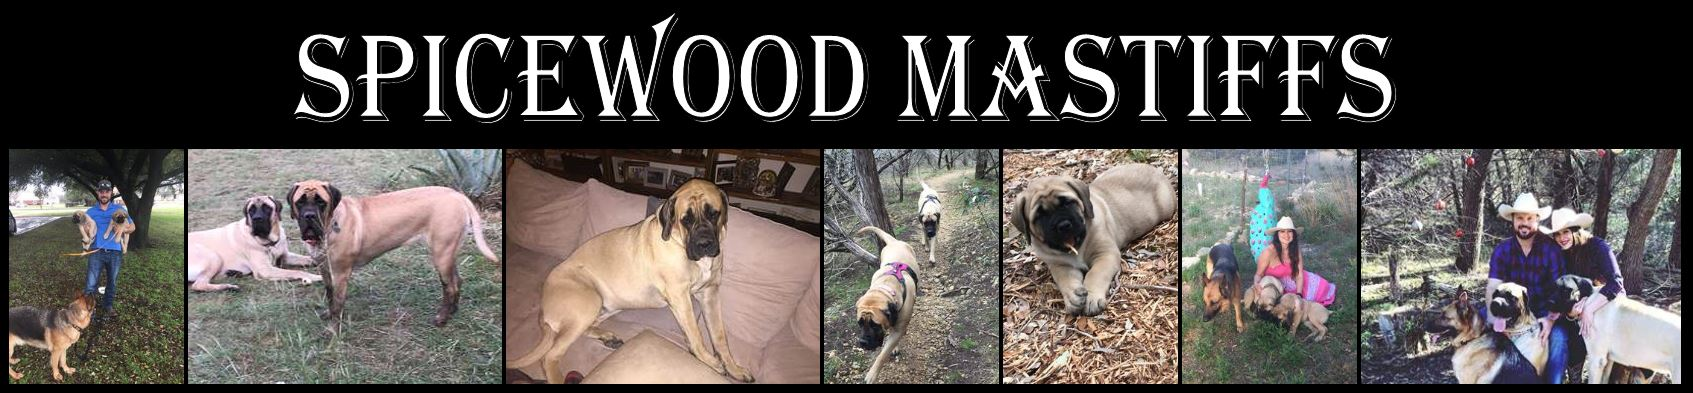 Spicewood Mastiffs